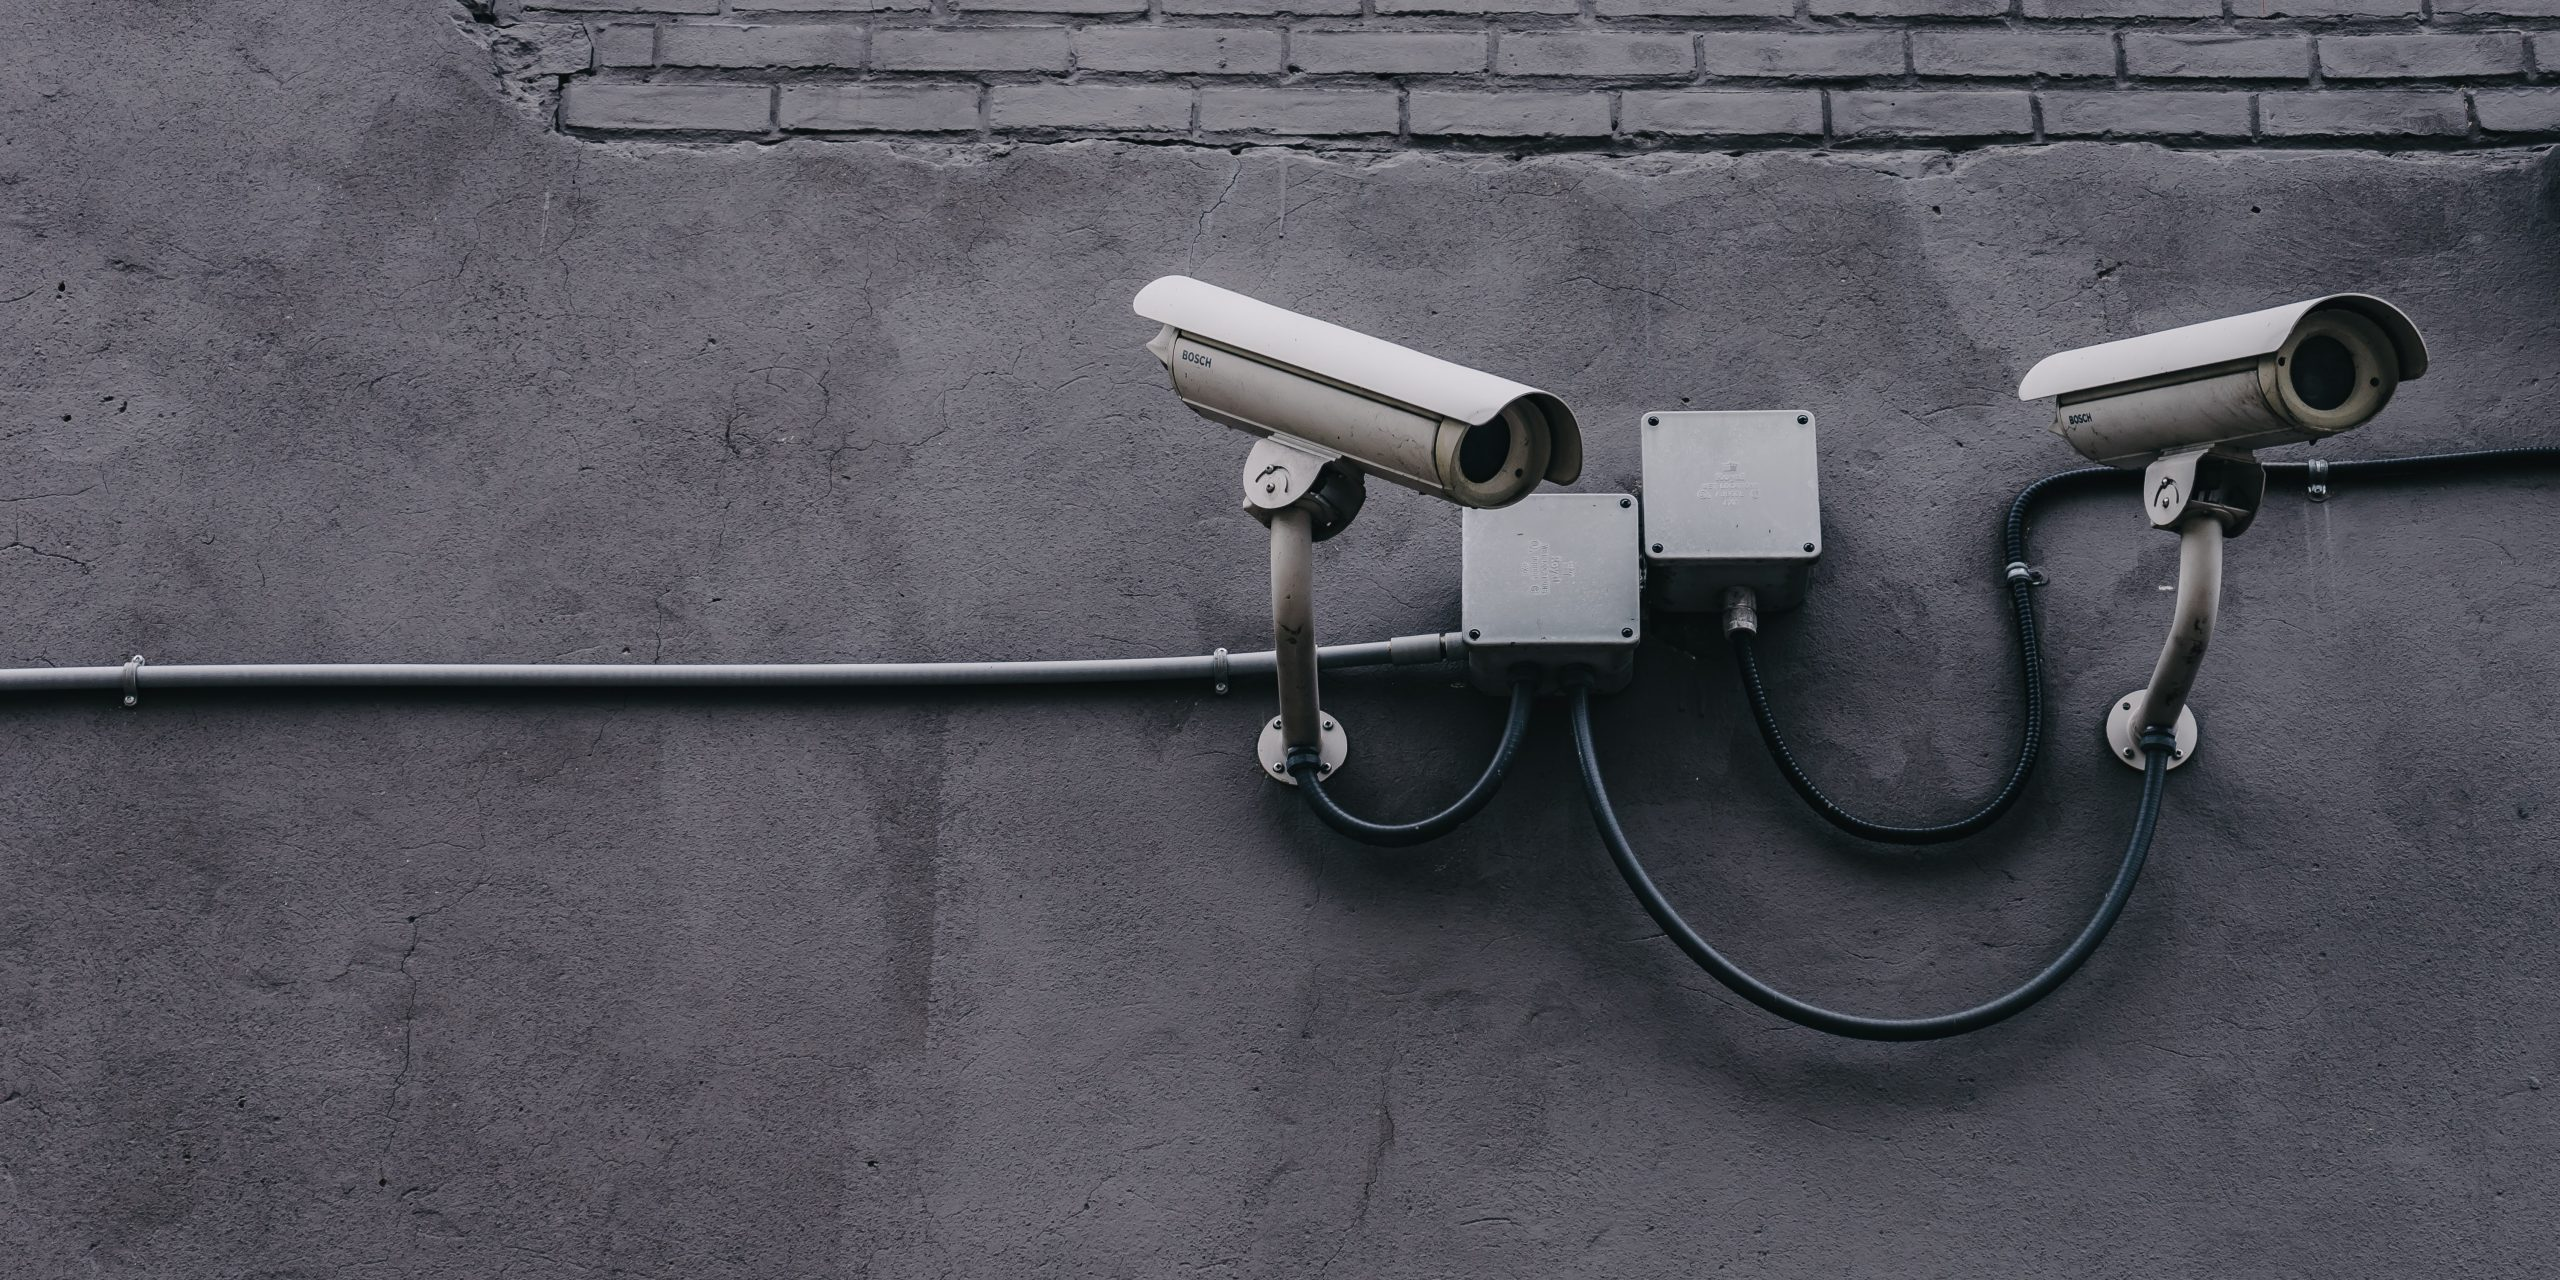 Picture of two outside security camera's